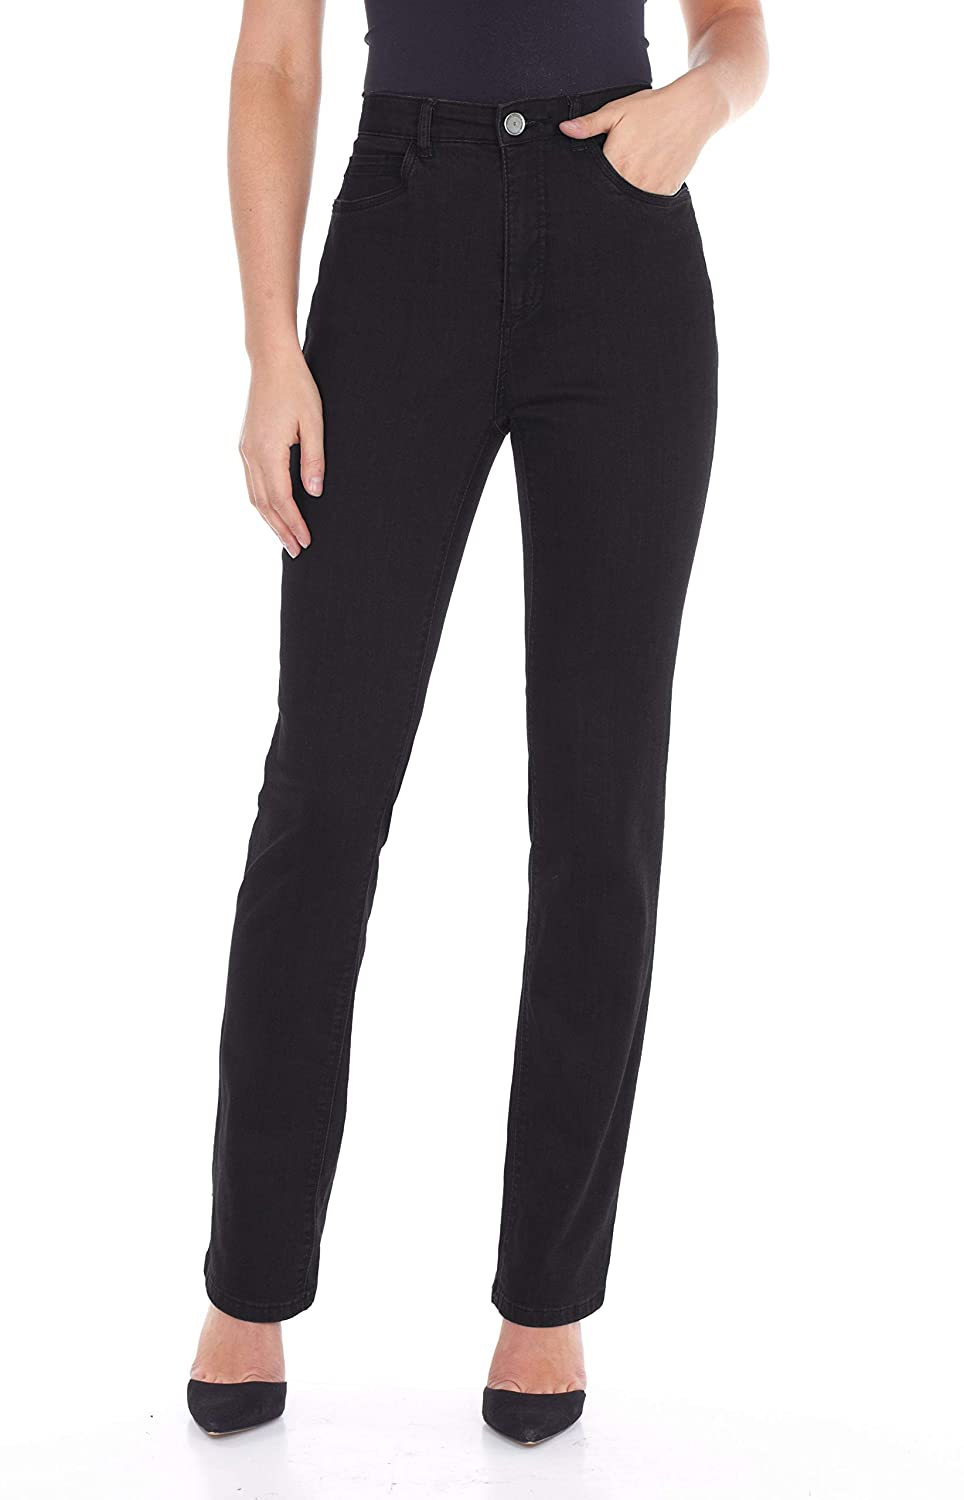 Black French Dressing Jeans FDJ Peggy Straight Leg 5 Pocket Jeans Style  6627250